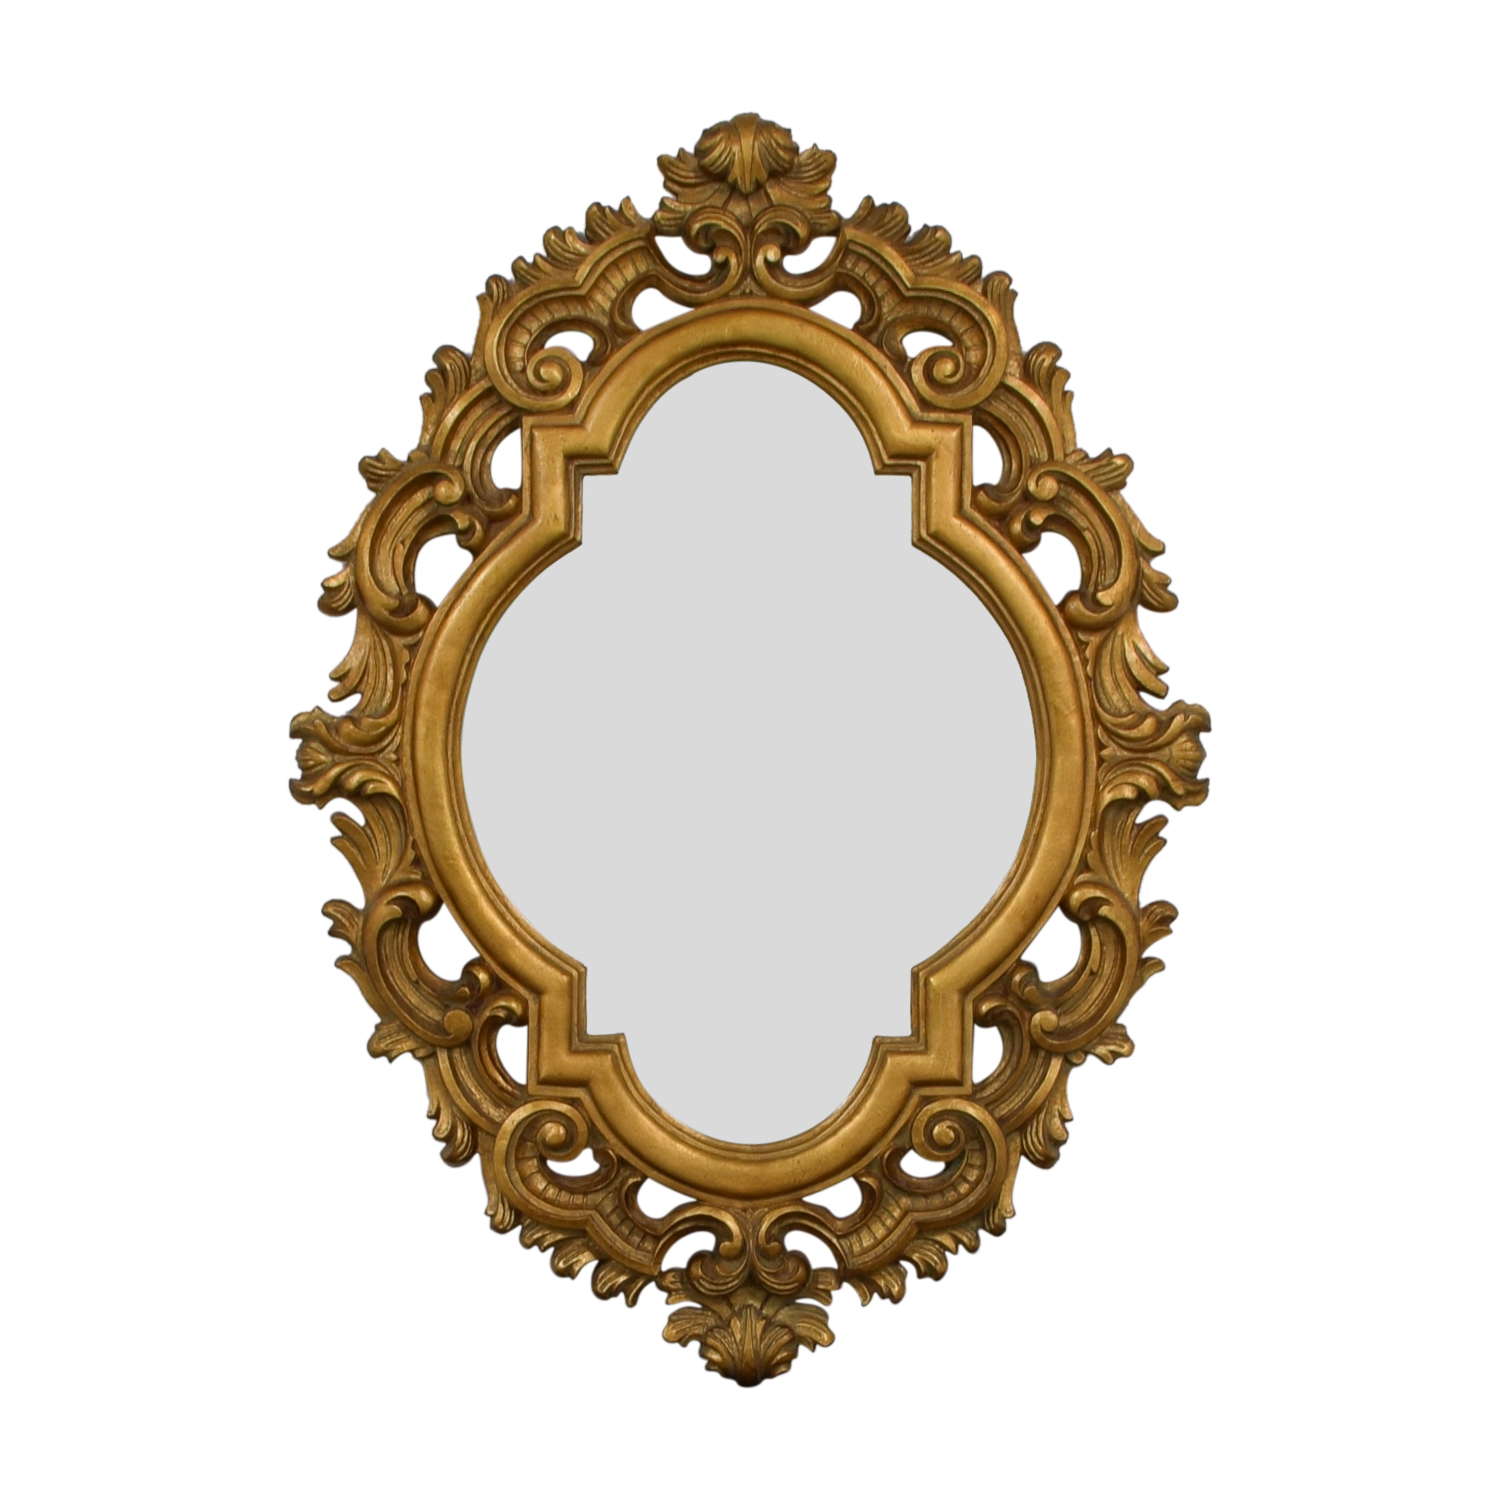 buy Oval Gold Wall Mirror  Decor